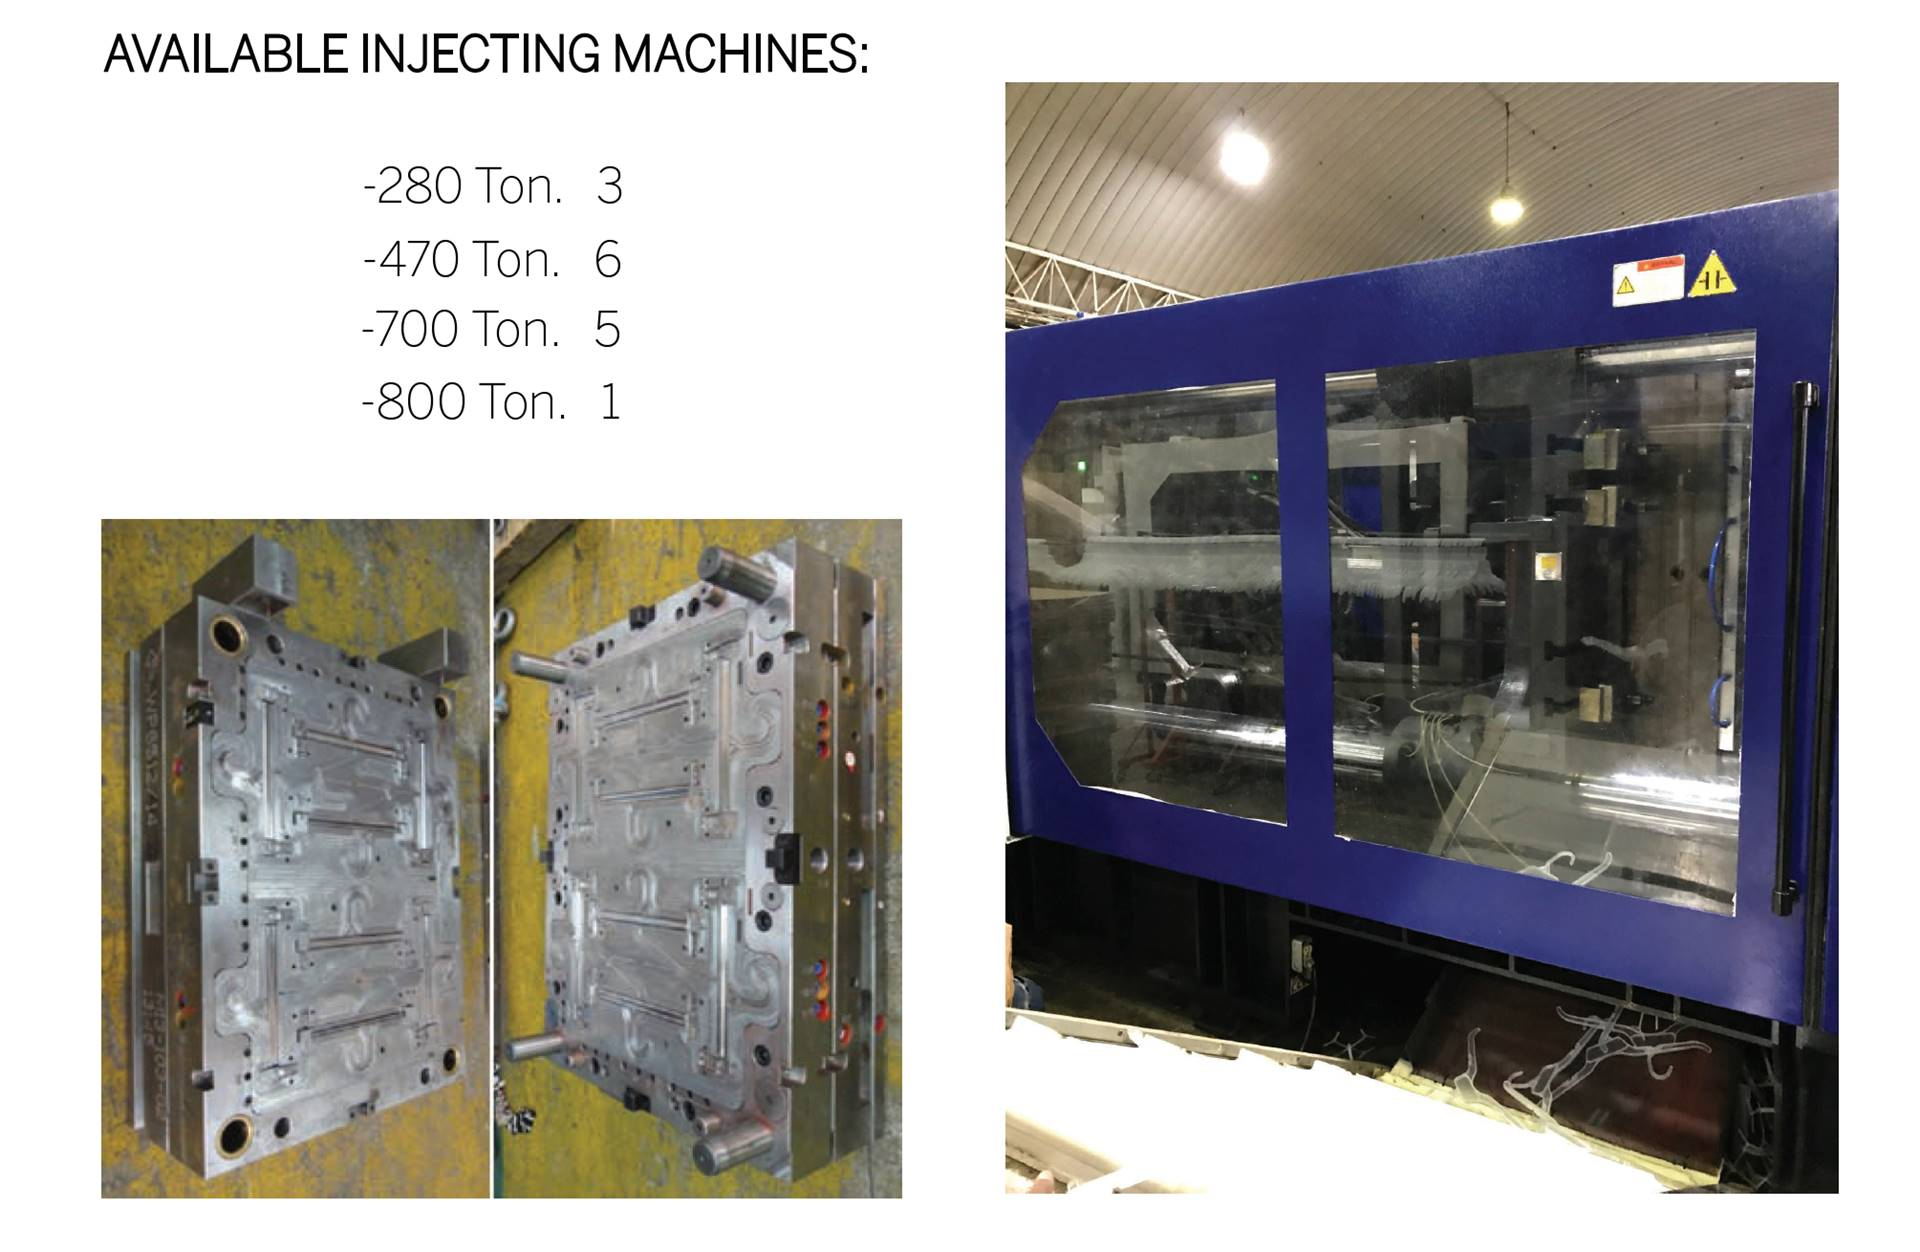 injectionmachines